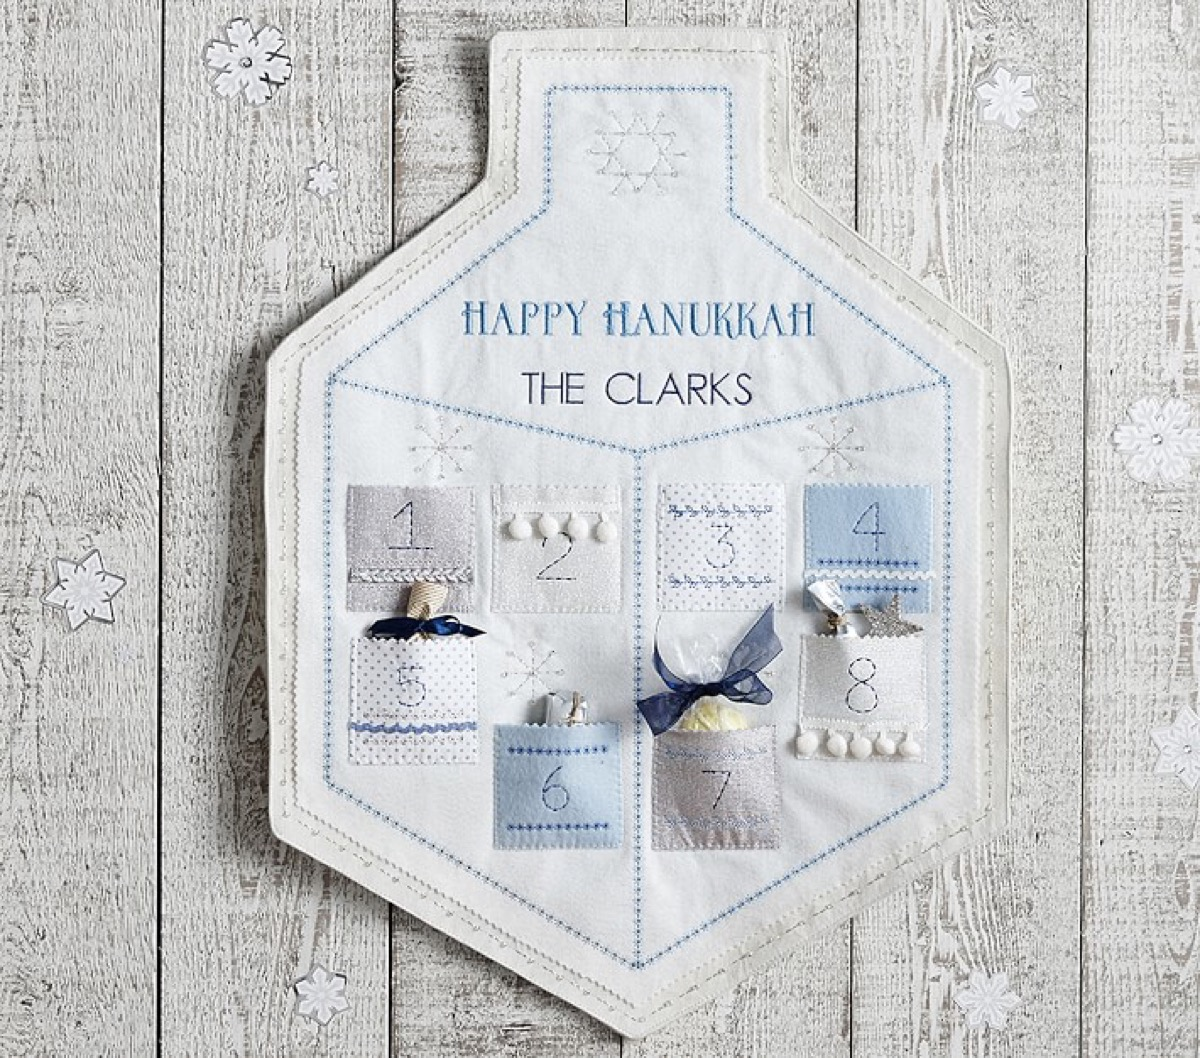 white cotton happy hanukkah wall hanging with gifts in it, hanukkah decorations